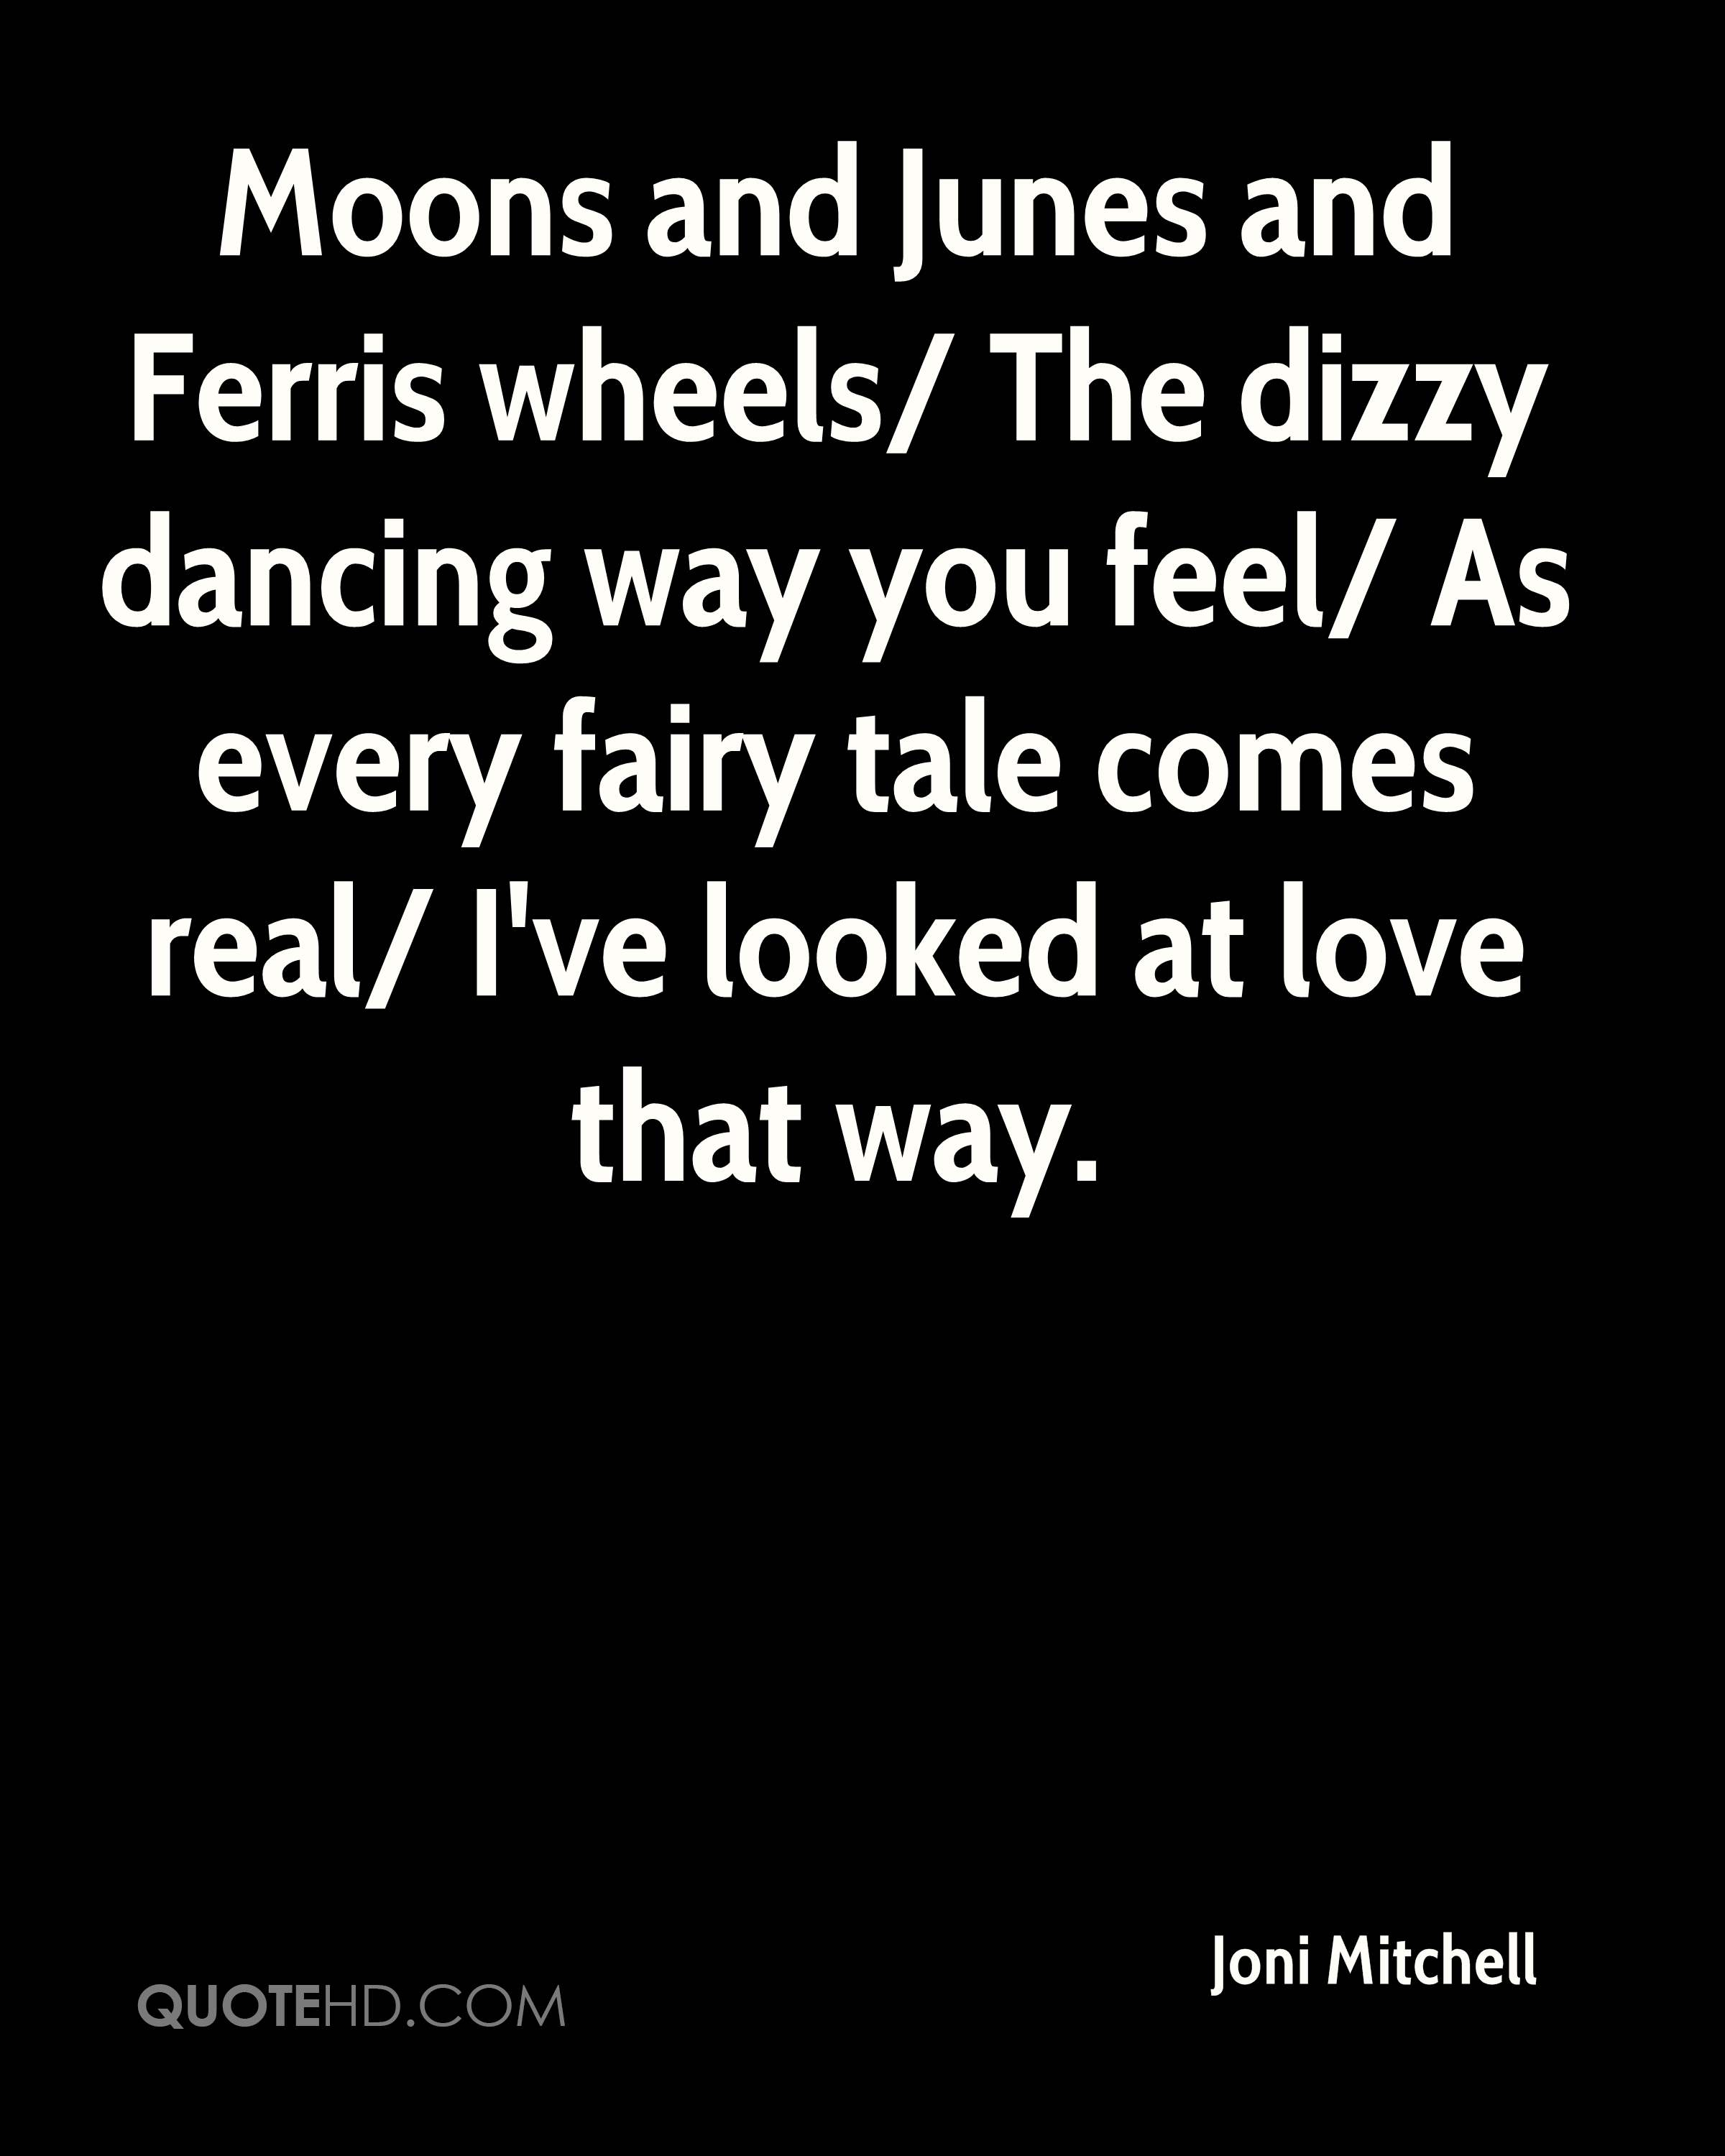 Moons and Junes and Ferris wheels/ The dizzy dancing way you feel/ As every fairy tale comes real/ I've looked at love that way.